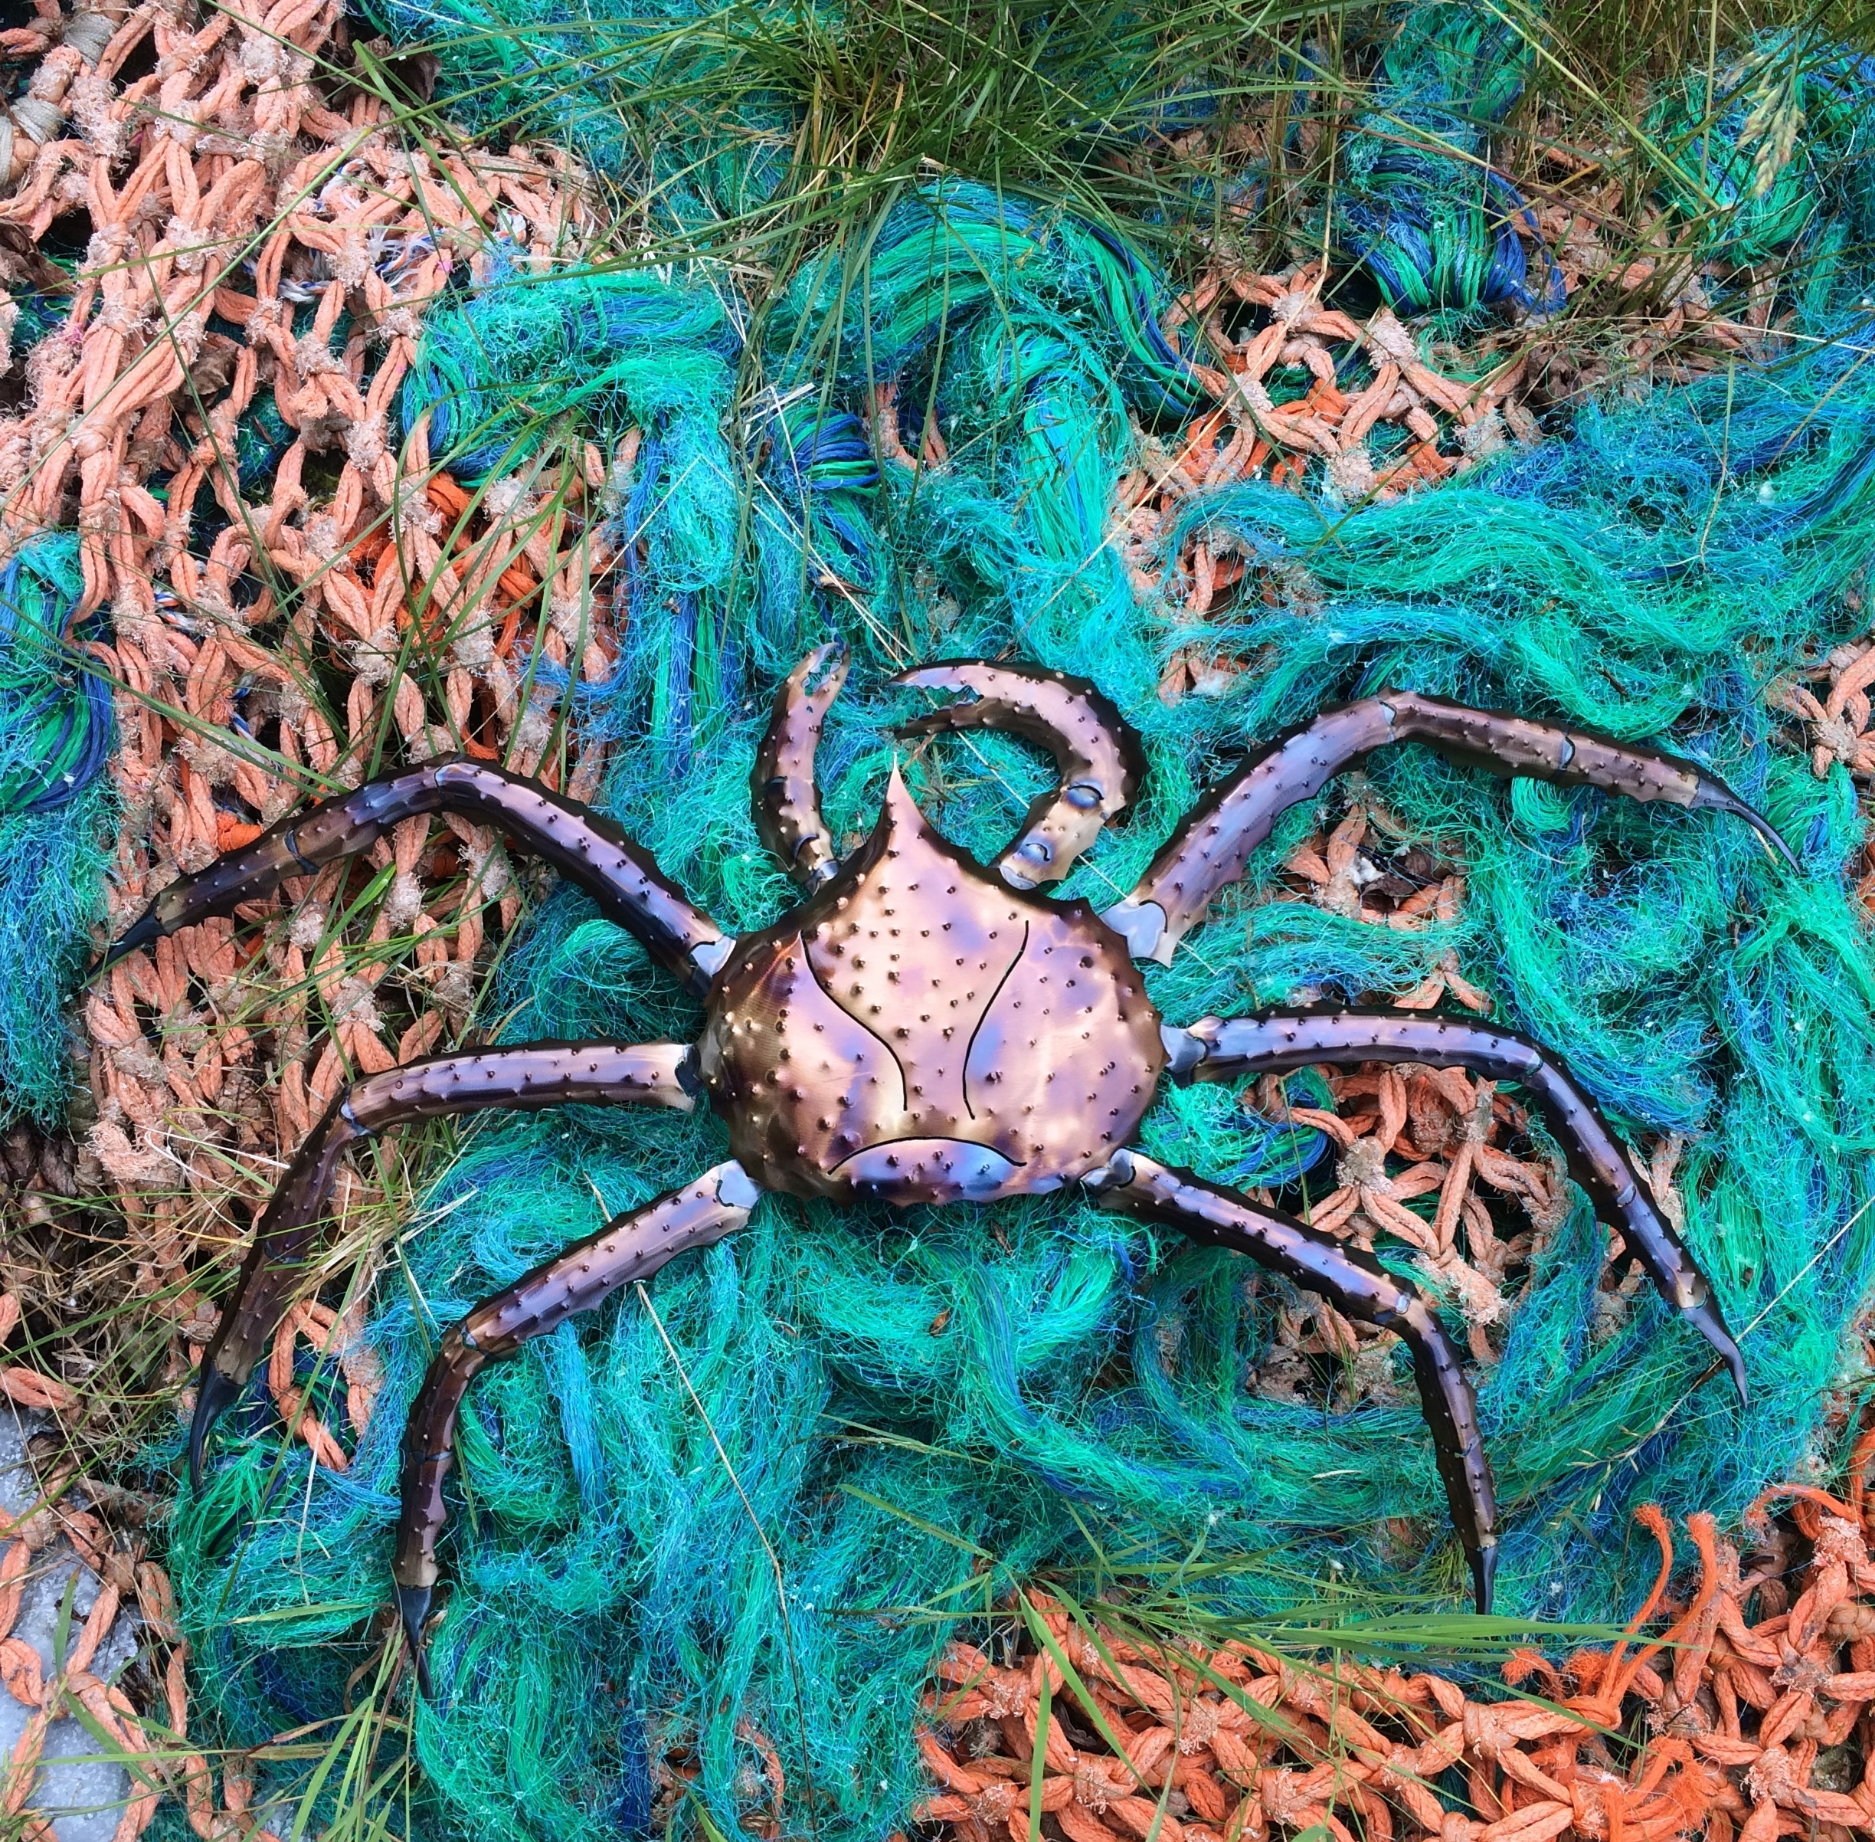 Crab On Net